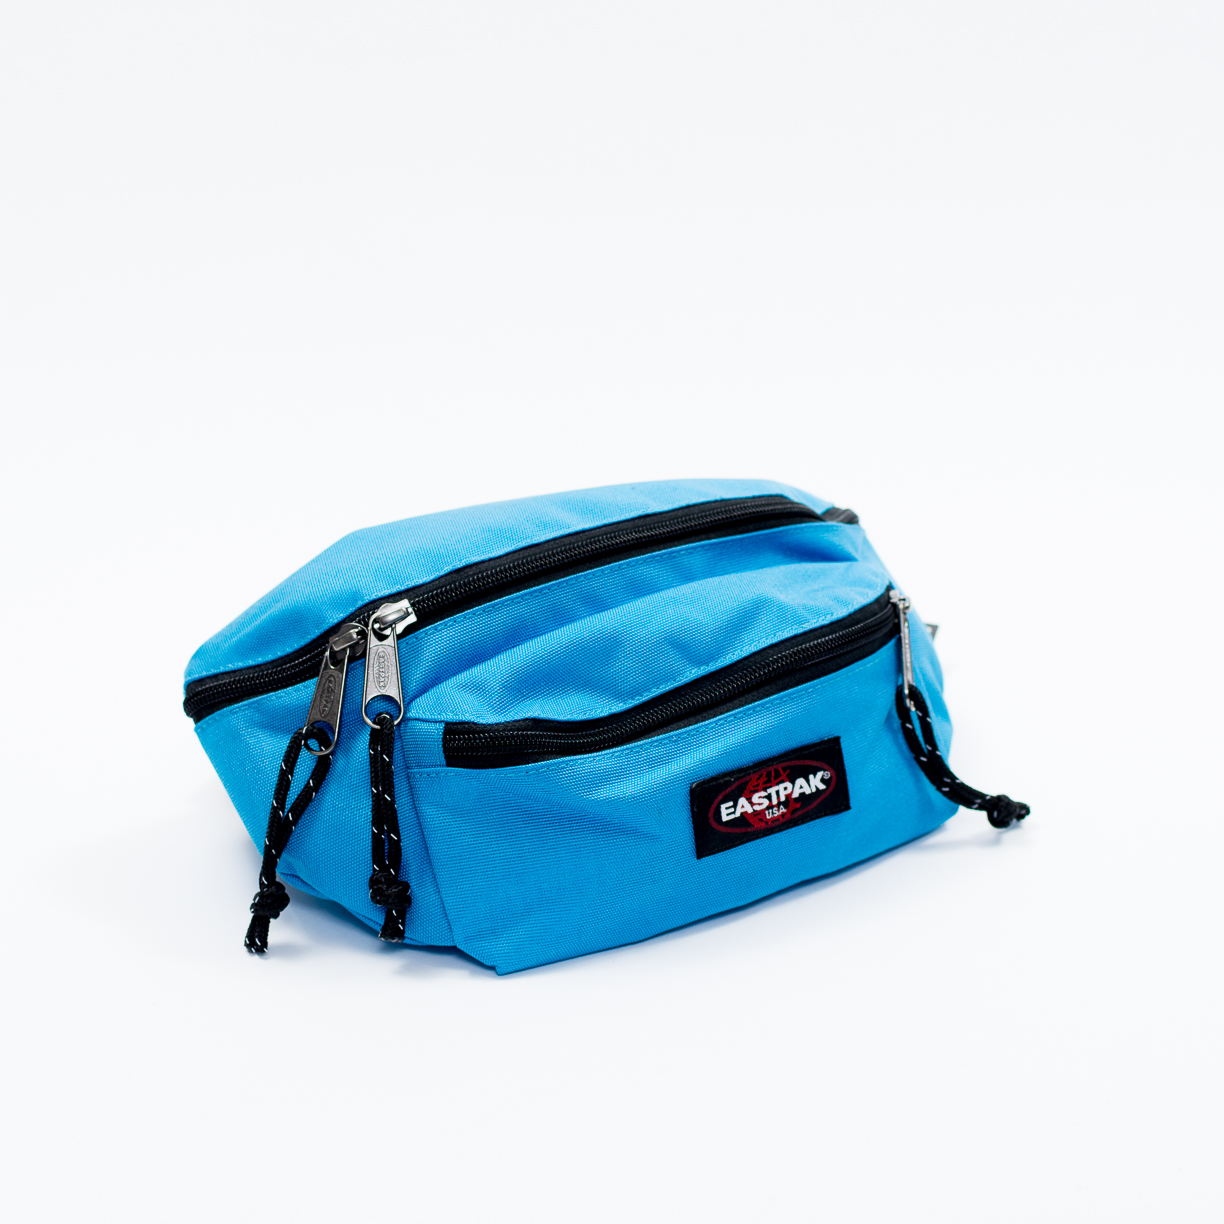 MARSUPIO EASTPAK DOGGY BAG BLUE AVION